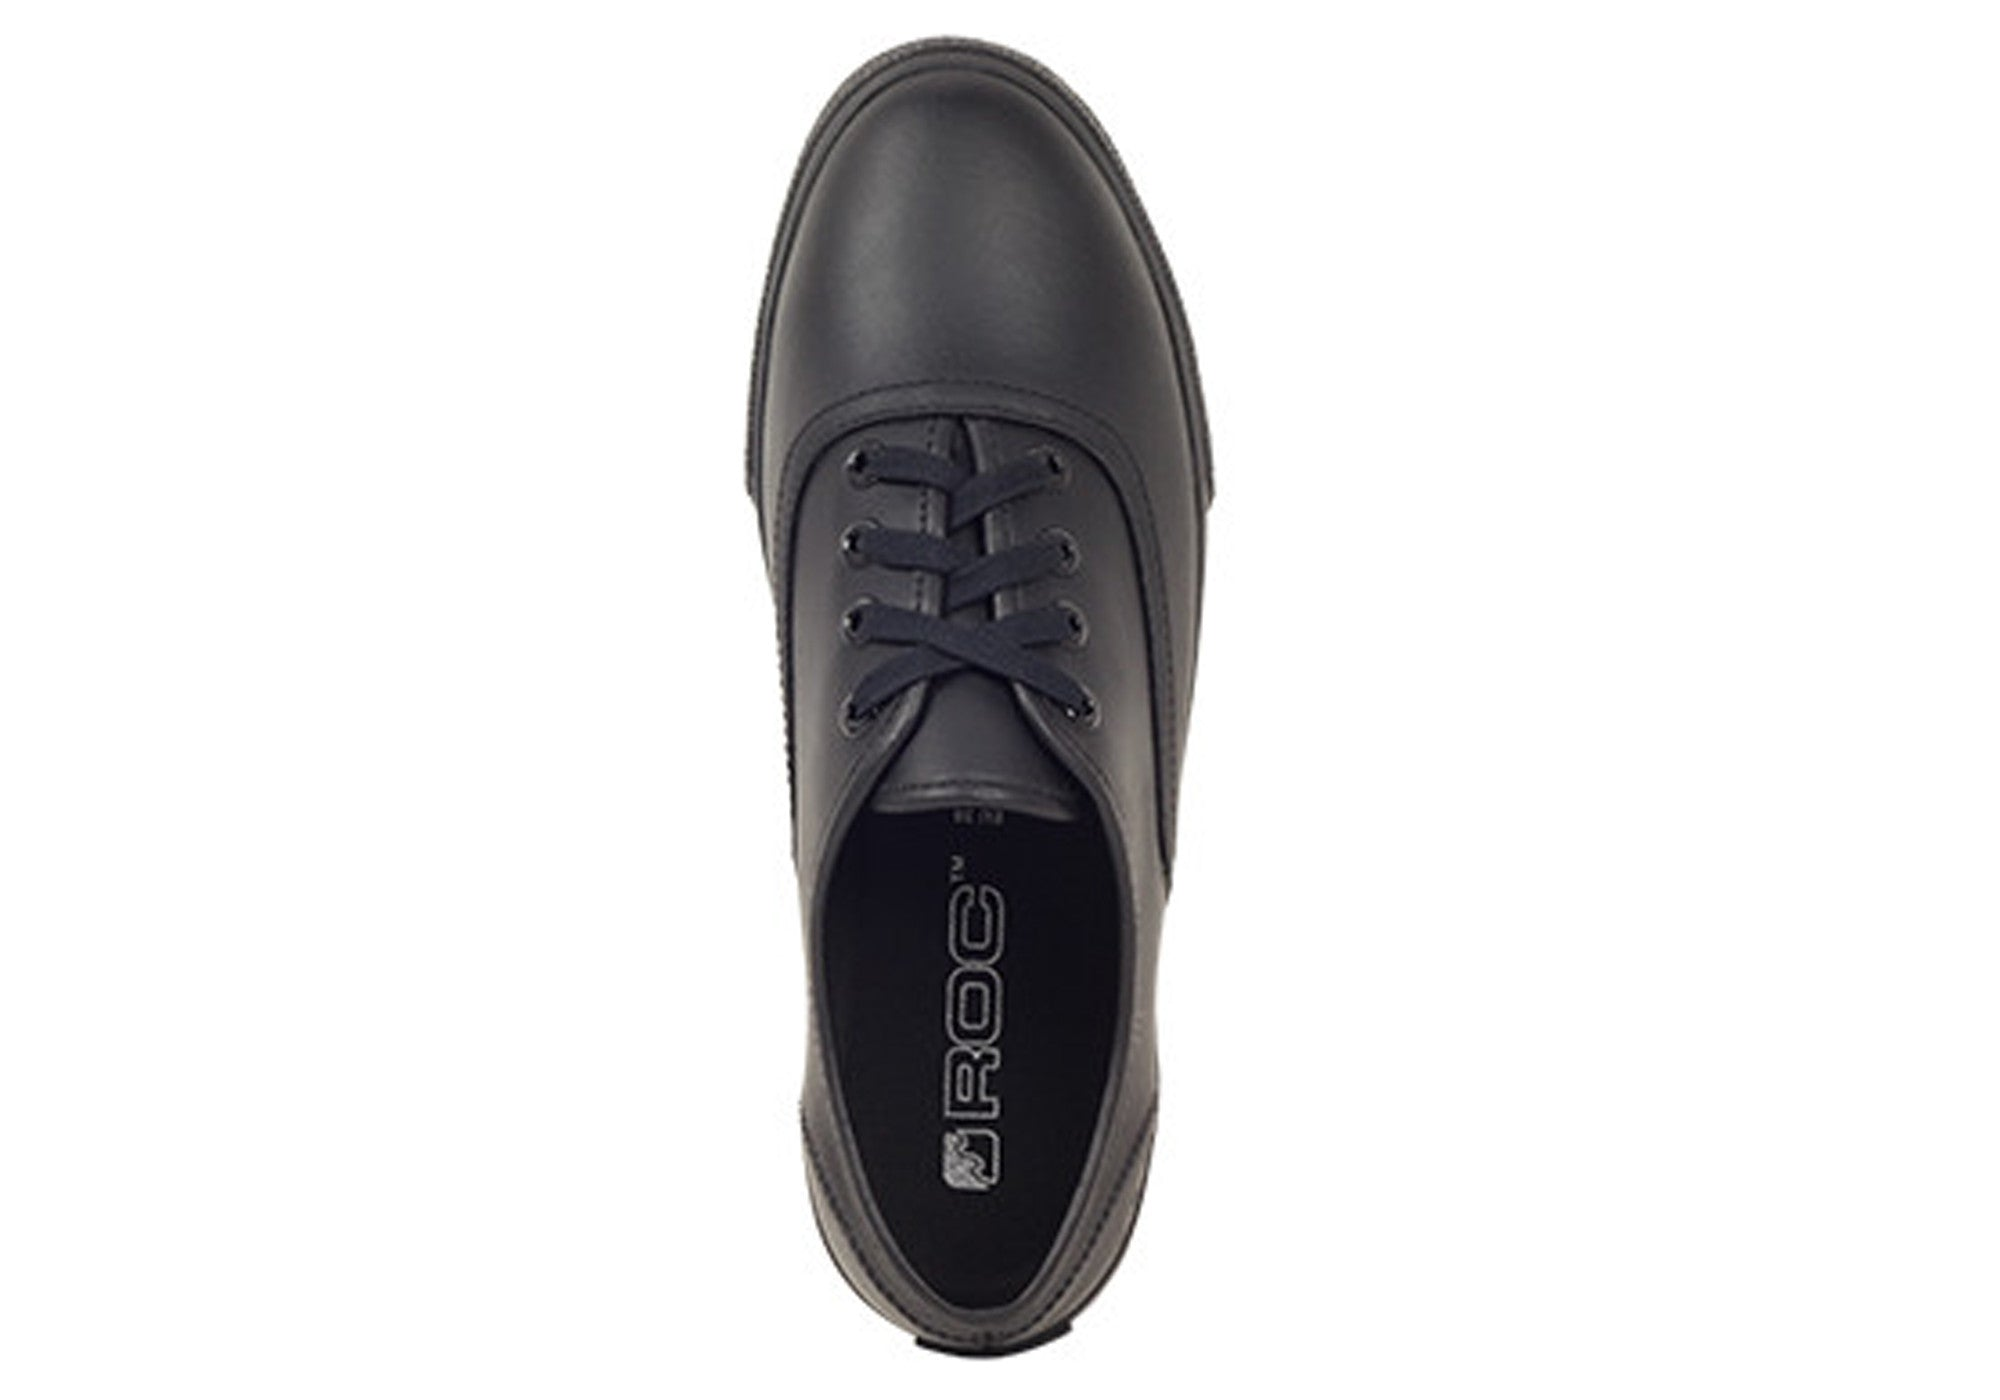 Roc Demi Senior Leather School Shoes Fashion Lace Up Sneakers